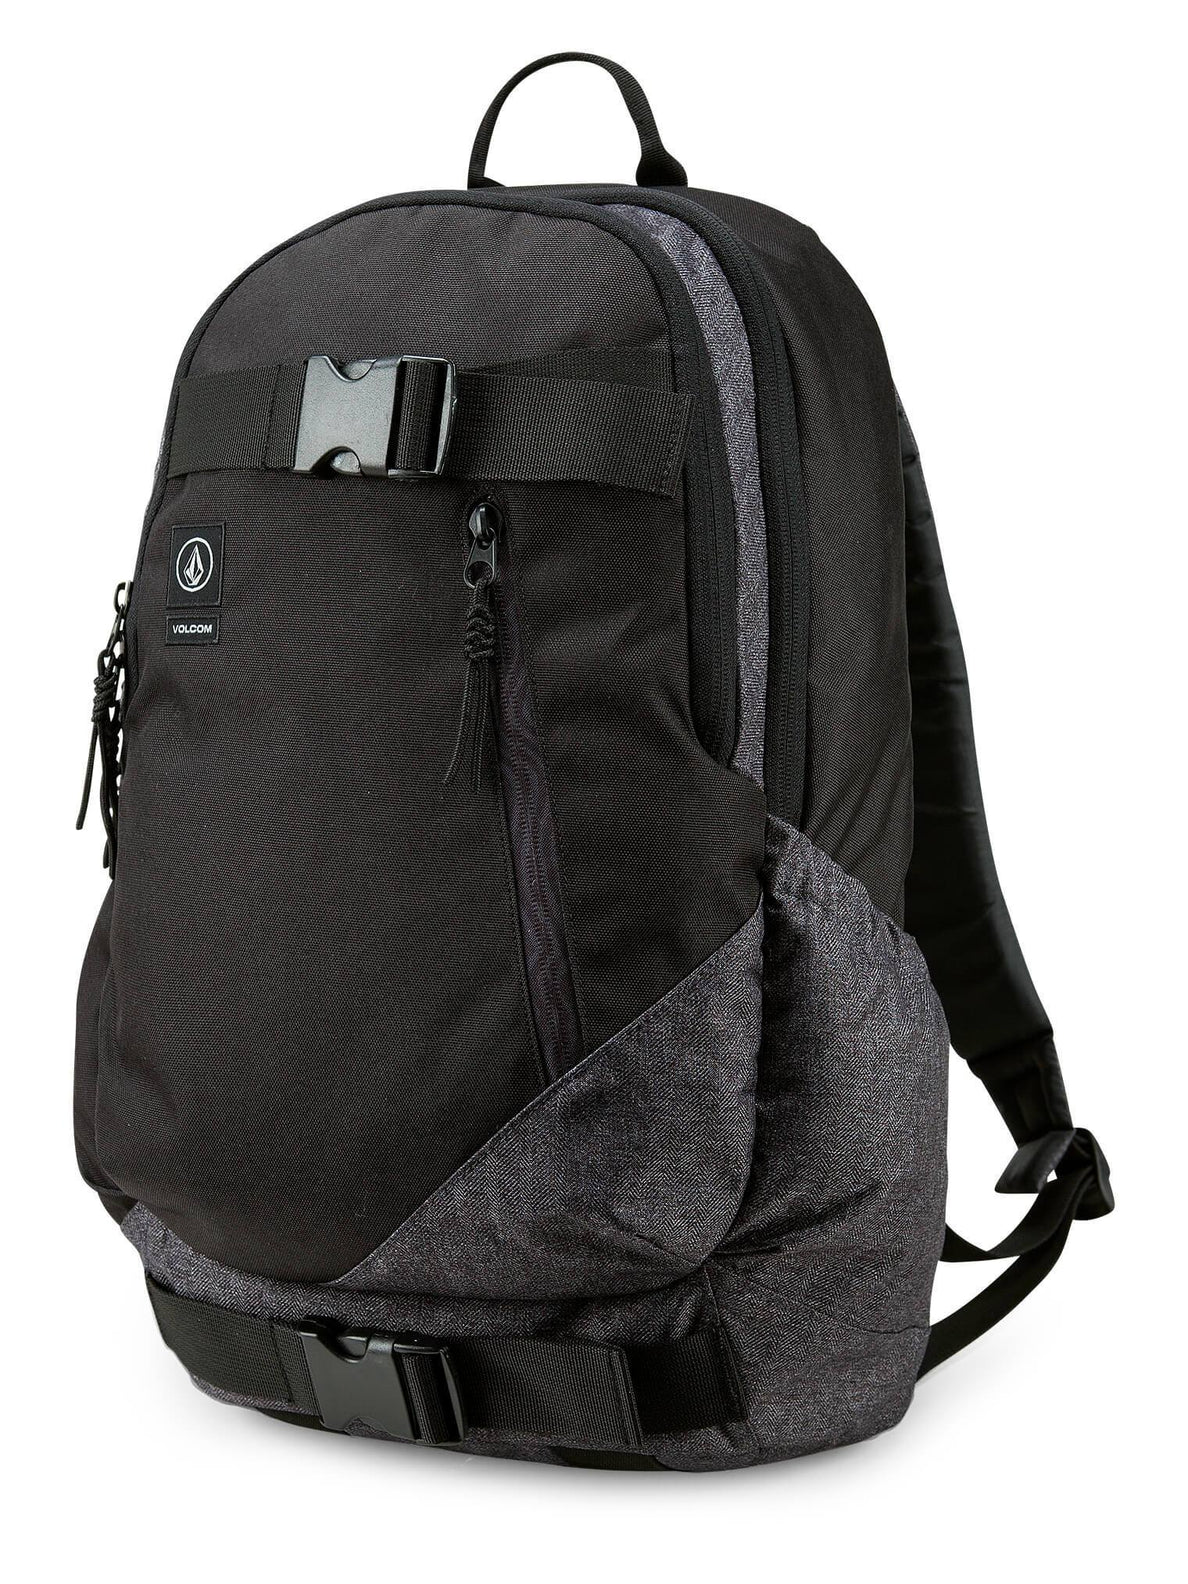 Substrate Backpack - Ink Black